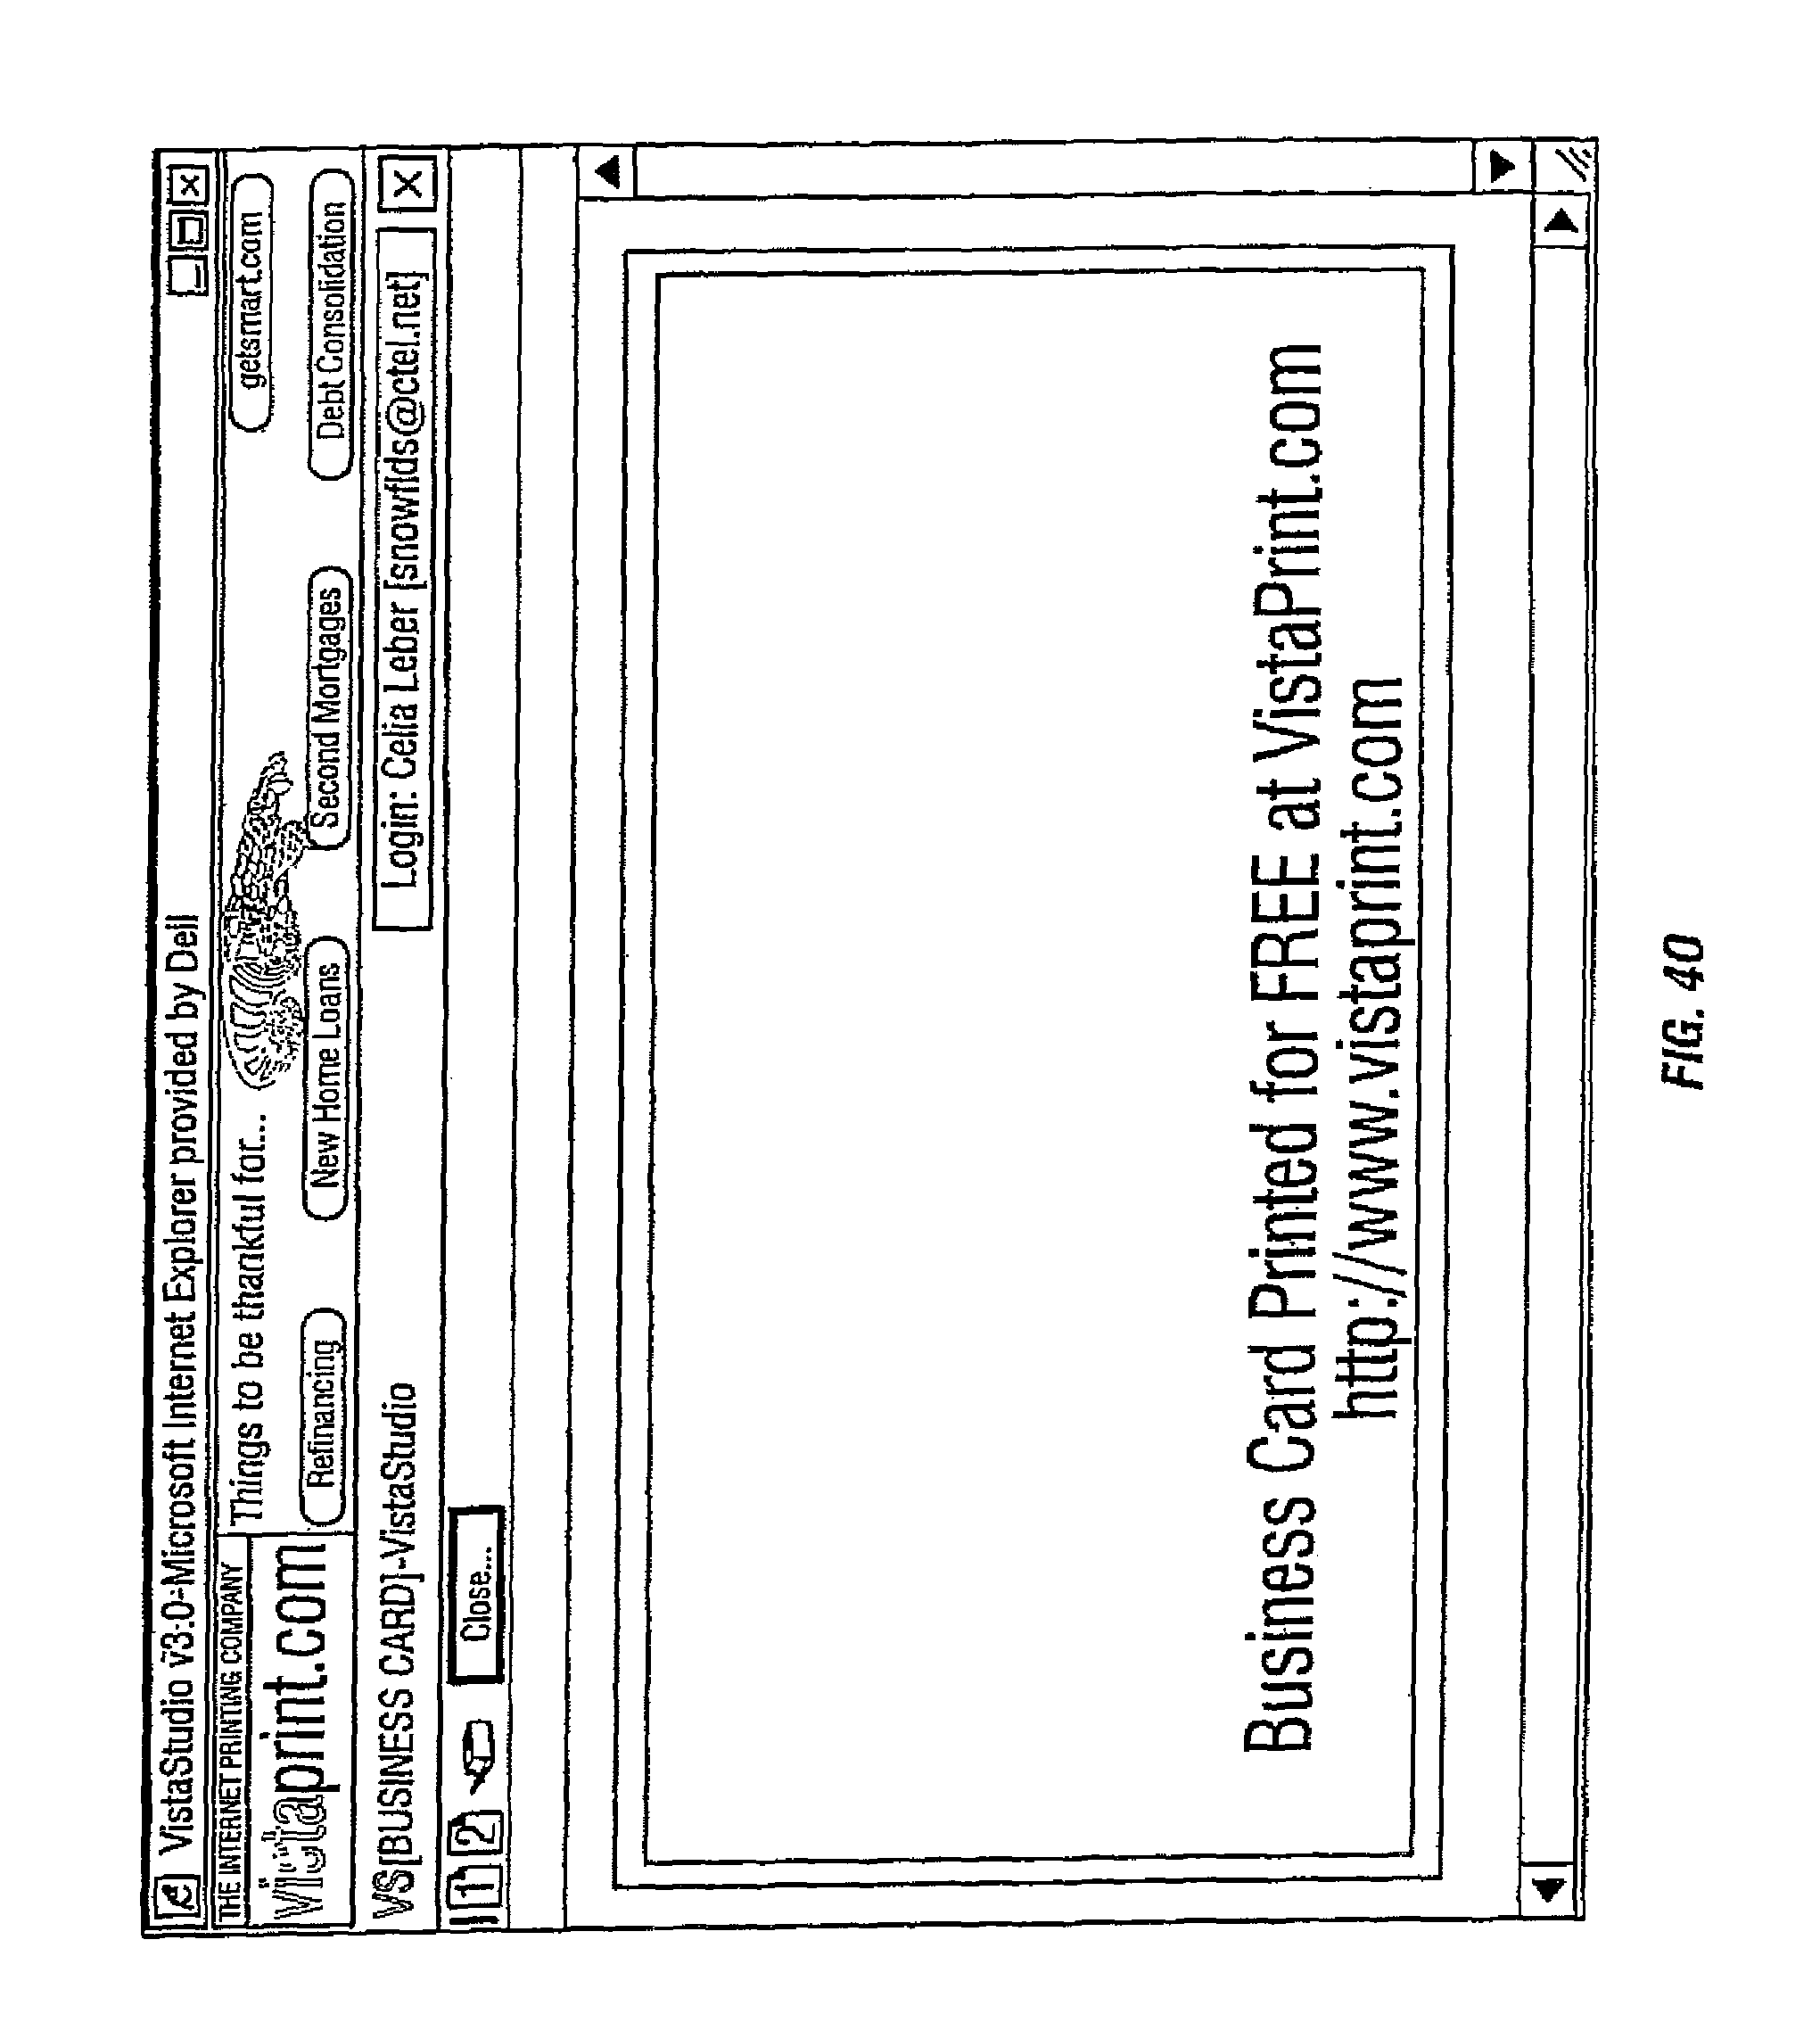 Patent US Browser based product design Google Patents